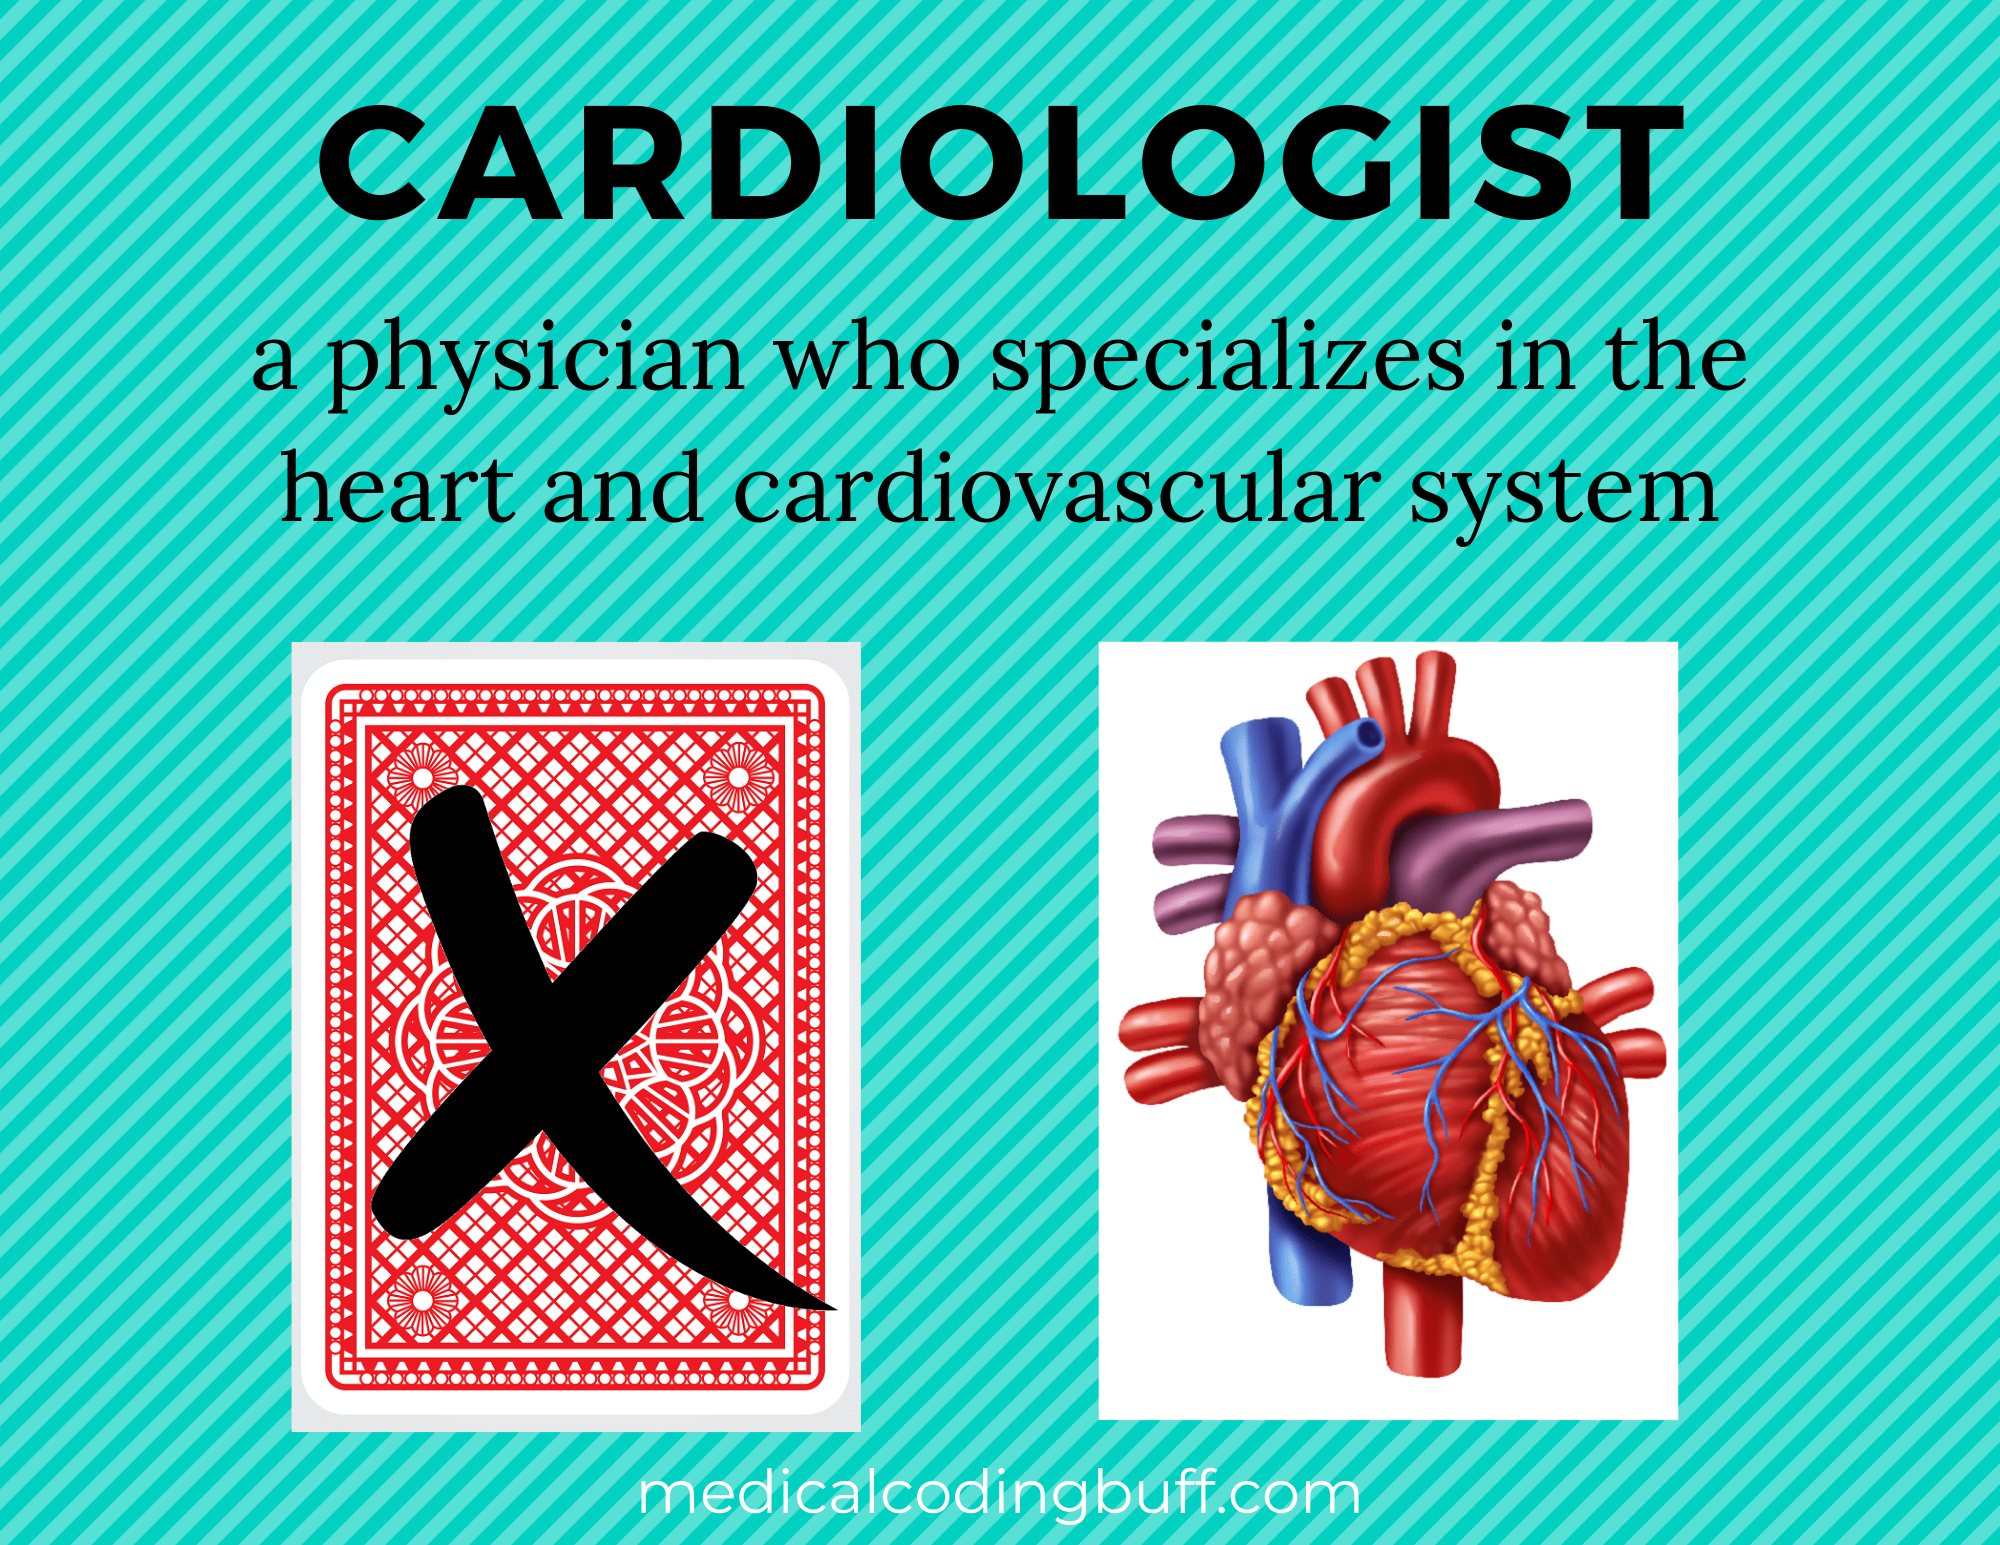 cardiologist specializes in the heart and cardiovascular system